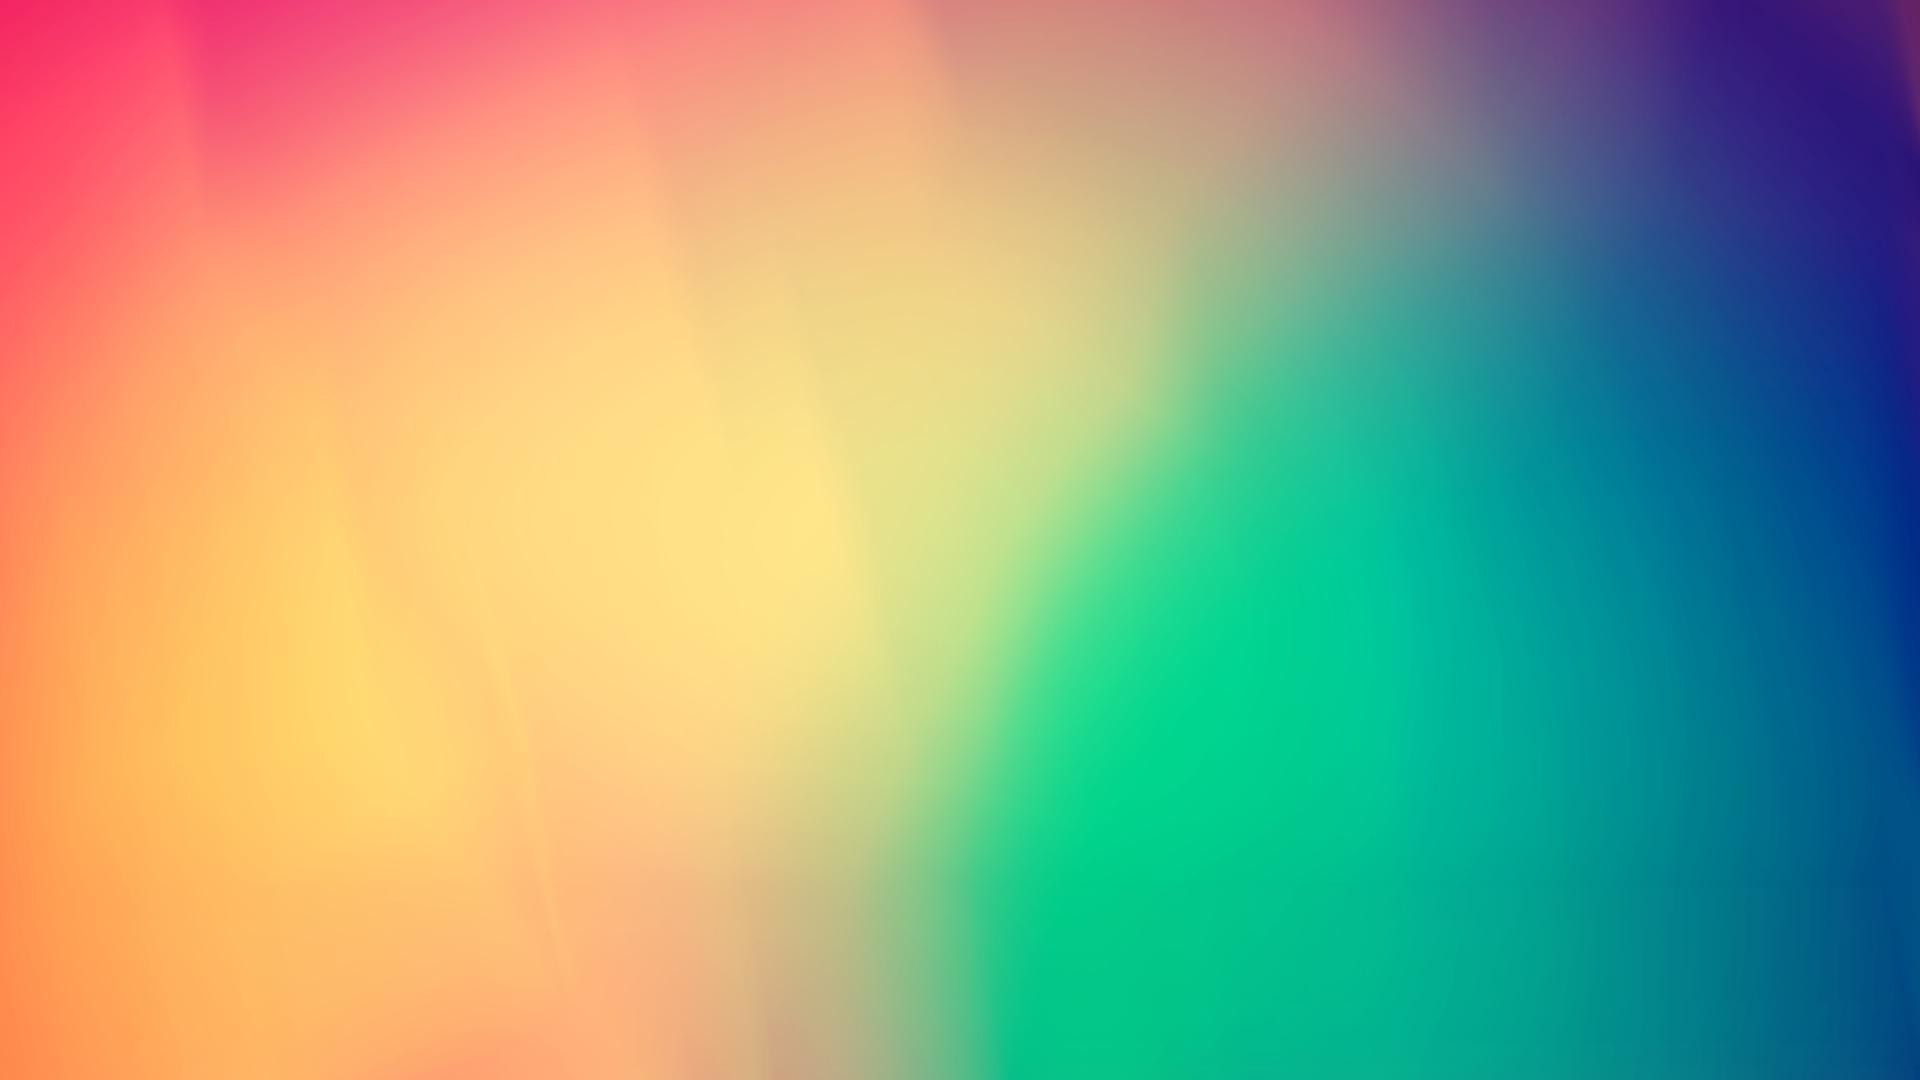 Plain Color Desktop Wallpaper WallpaperSafari